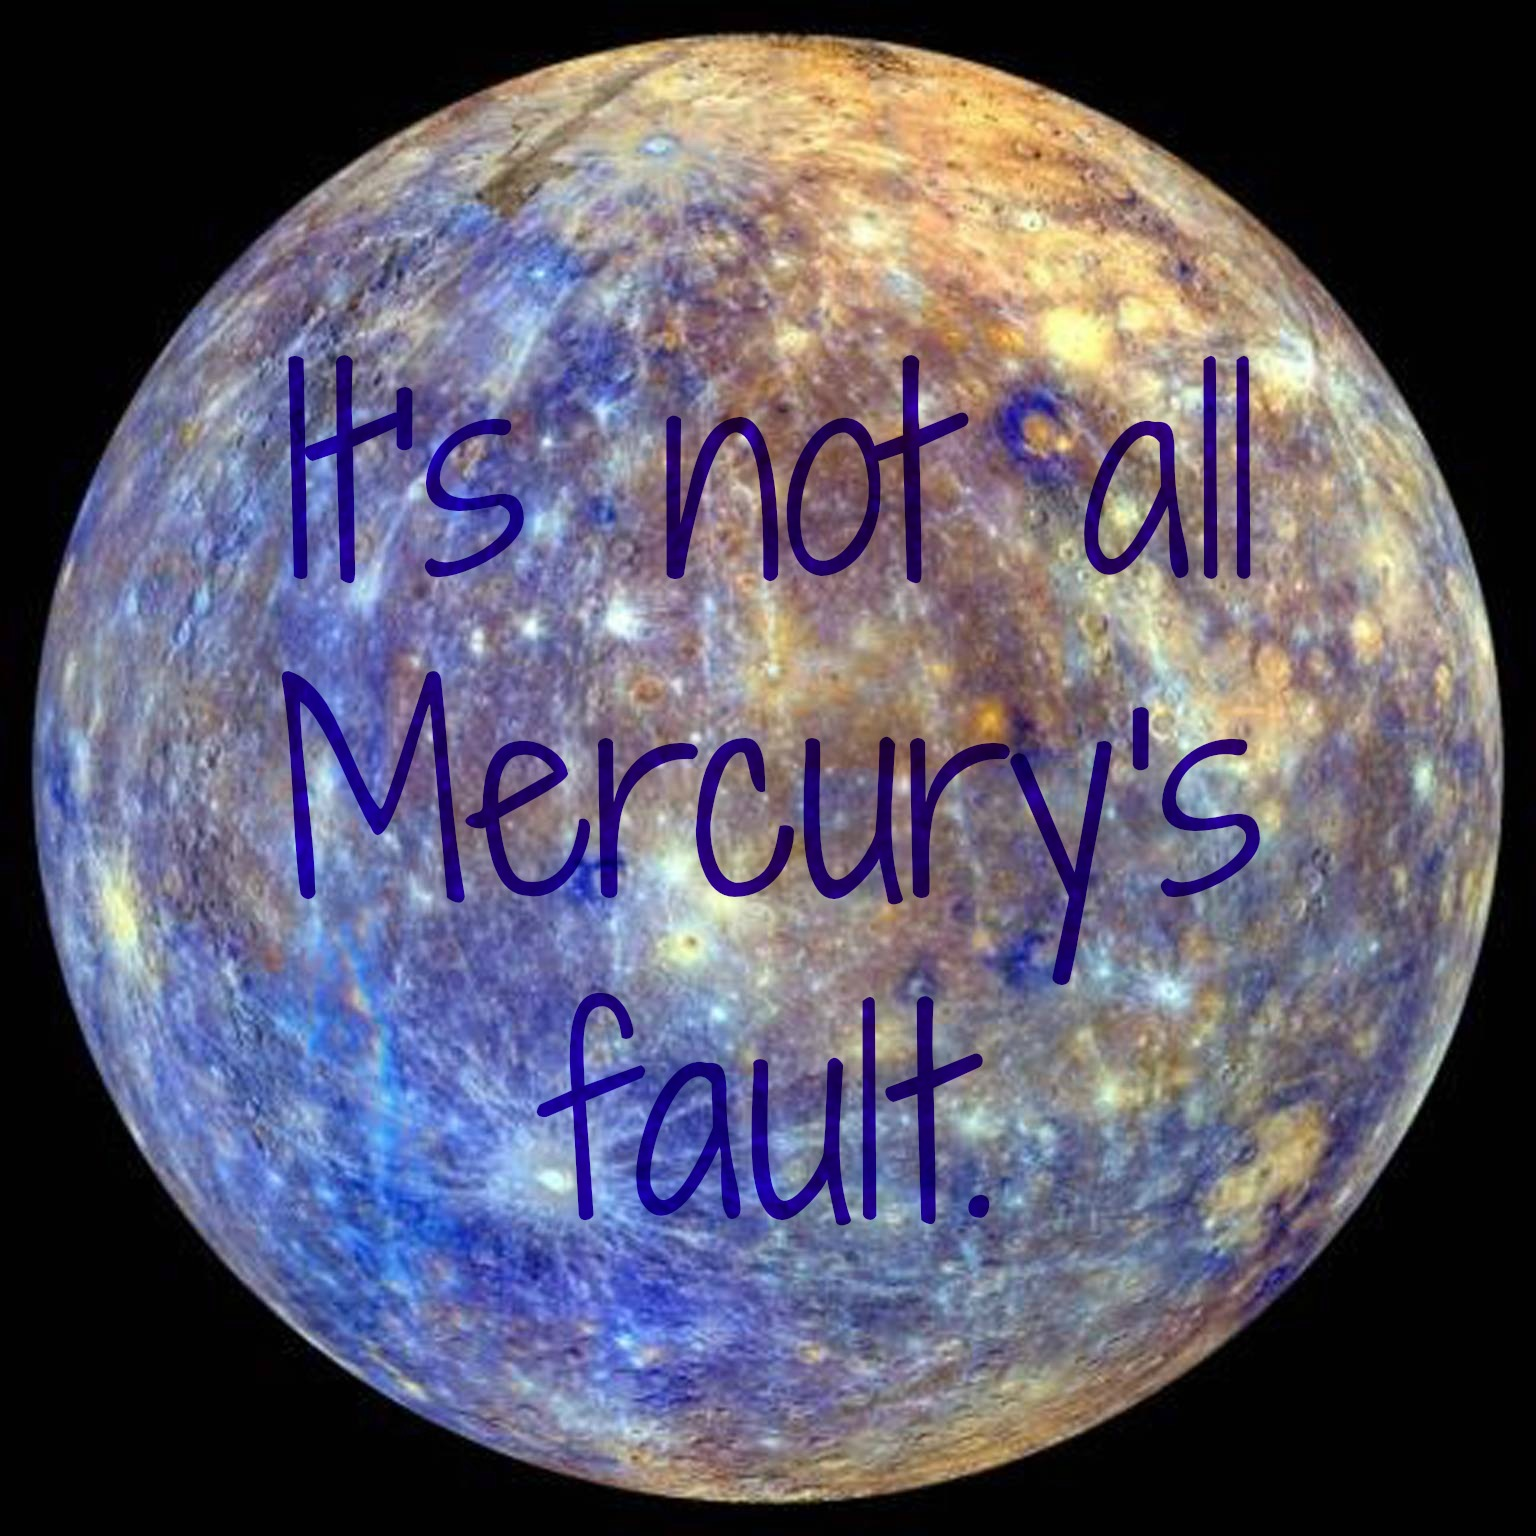 Mercury-edited